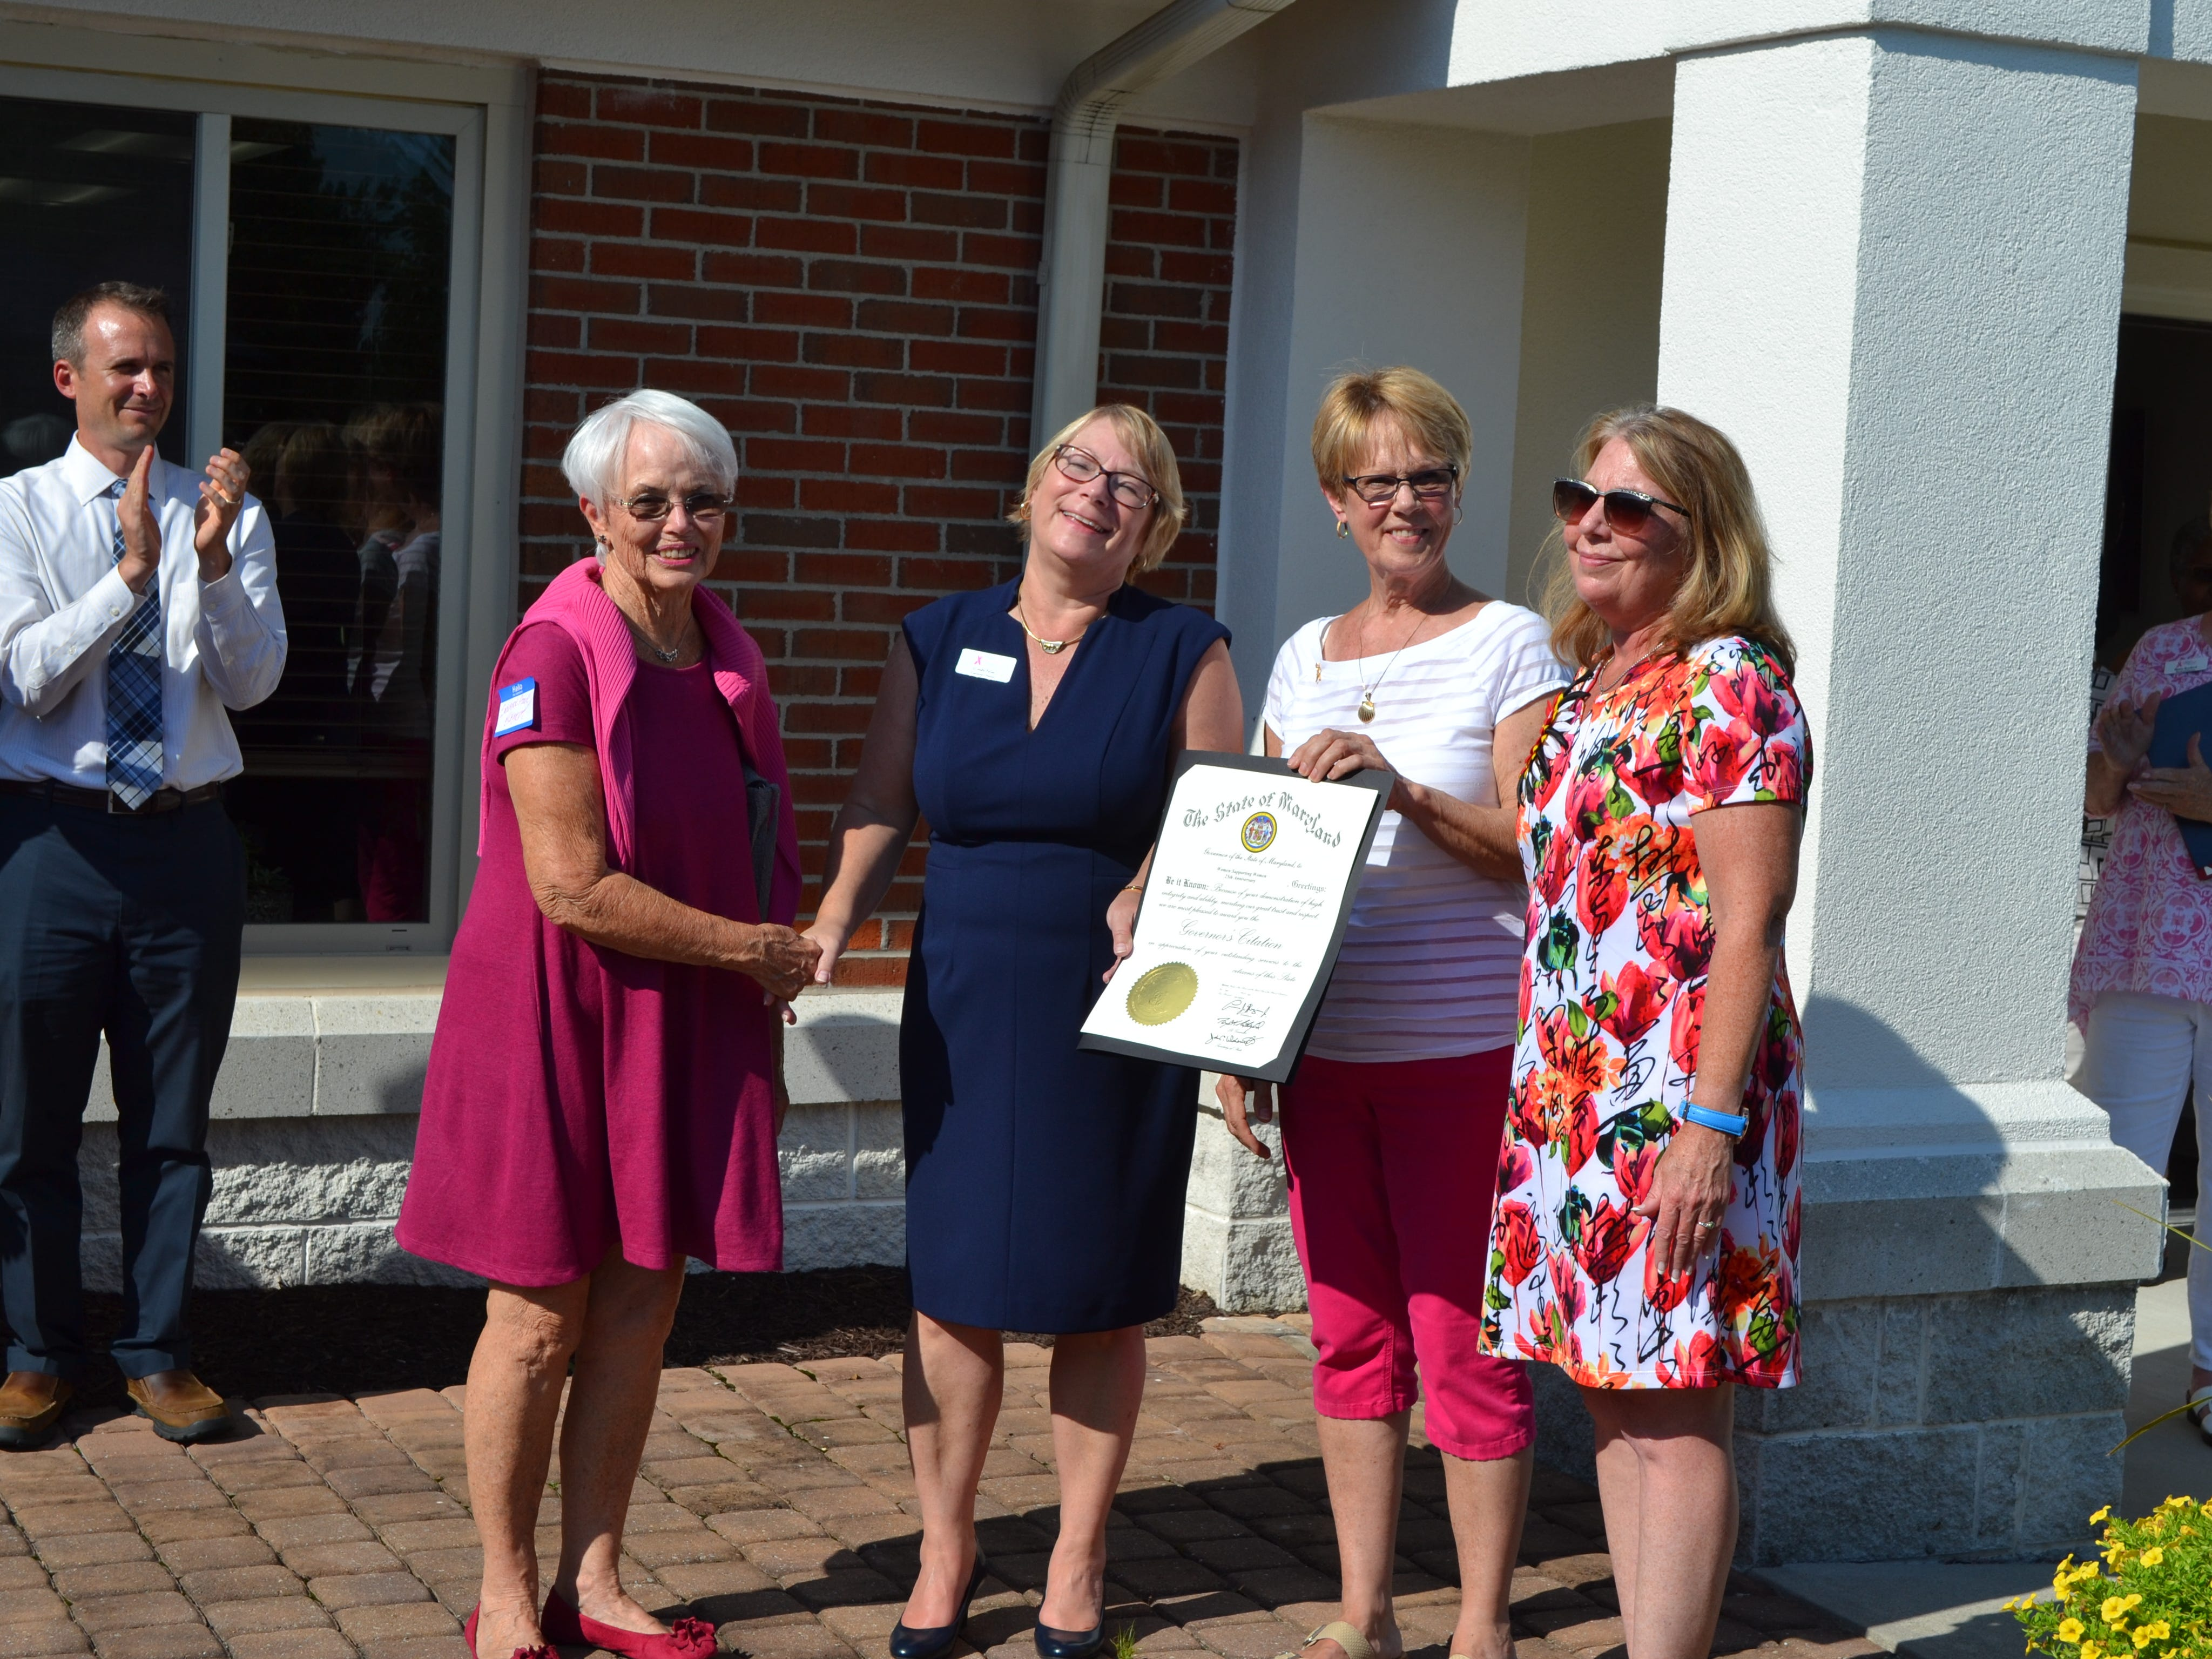 From left, Sen. Addie Eckhardt, Women Supporting Women Executive Director Cindy Feist, WSW founder Sue Revelle and Delegate Mary Beth Carozza pose with a proclamation from Gov. Larry Hogan during  the 25th anniversary party for Women Supporting Women, a  breast cancer support organization in Salisbury, on Thursday, July 26.